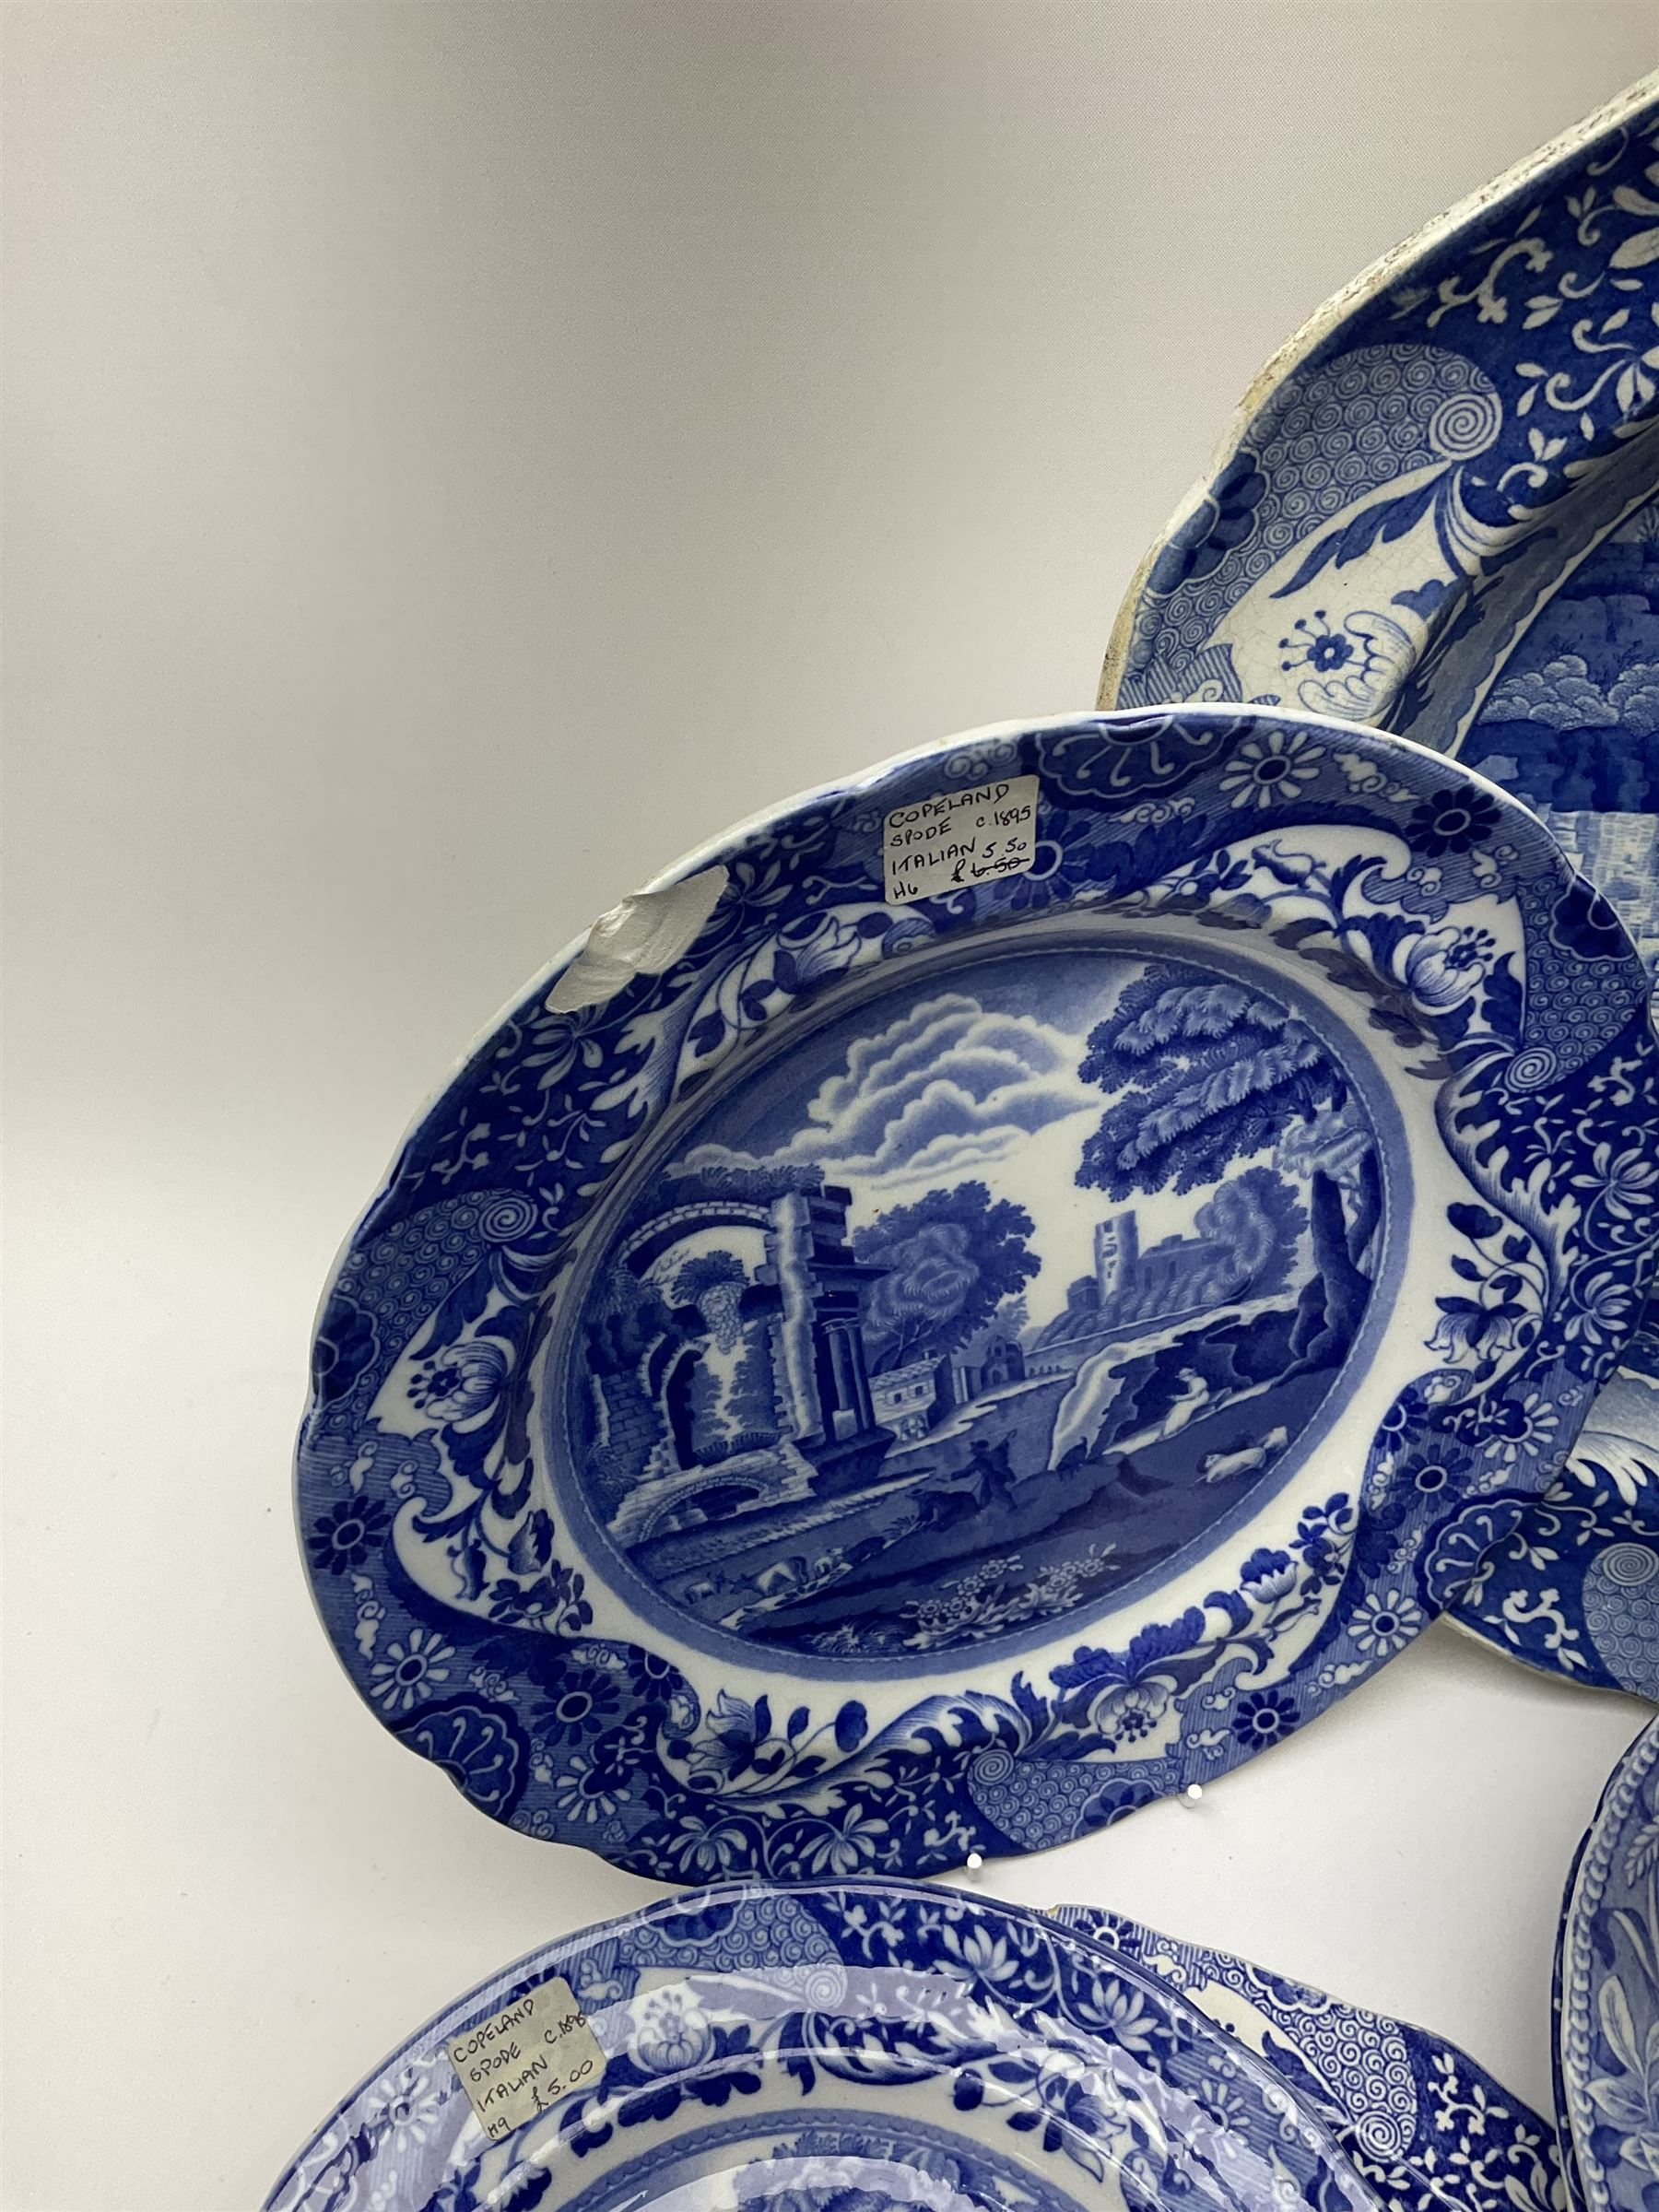 A group of 19th century Spode blue and white transfer printed pottery - Image 3 of 5